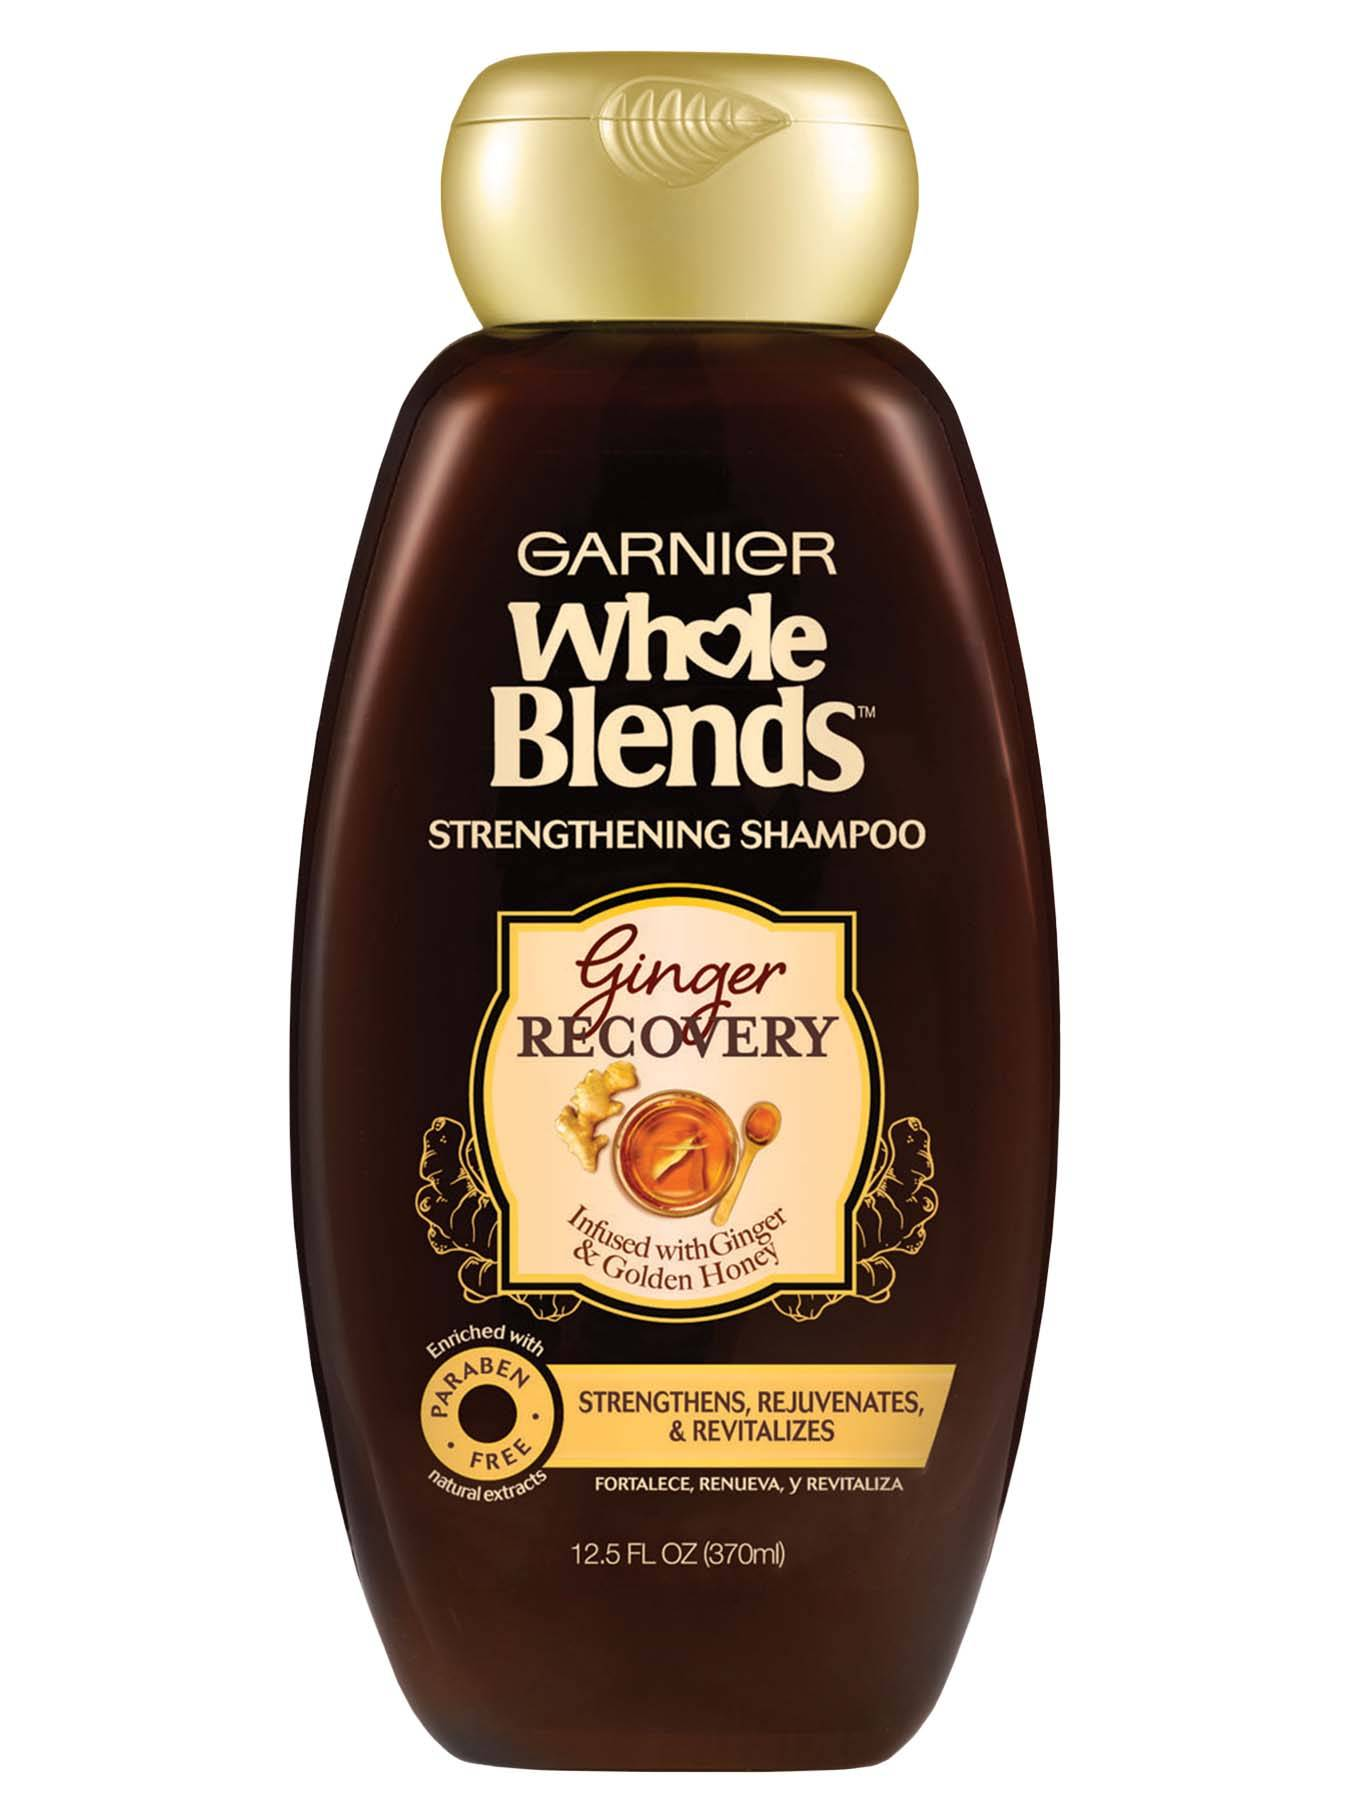 Front view of Whole Blends Ginger Recovery Strengthening Shampoo.